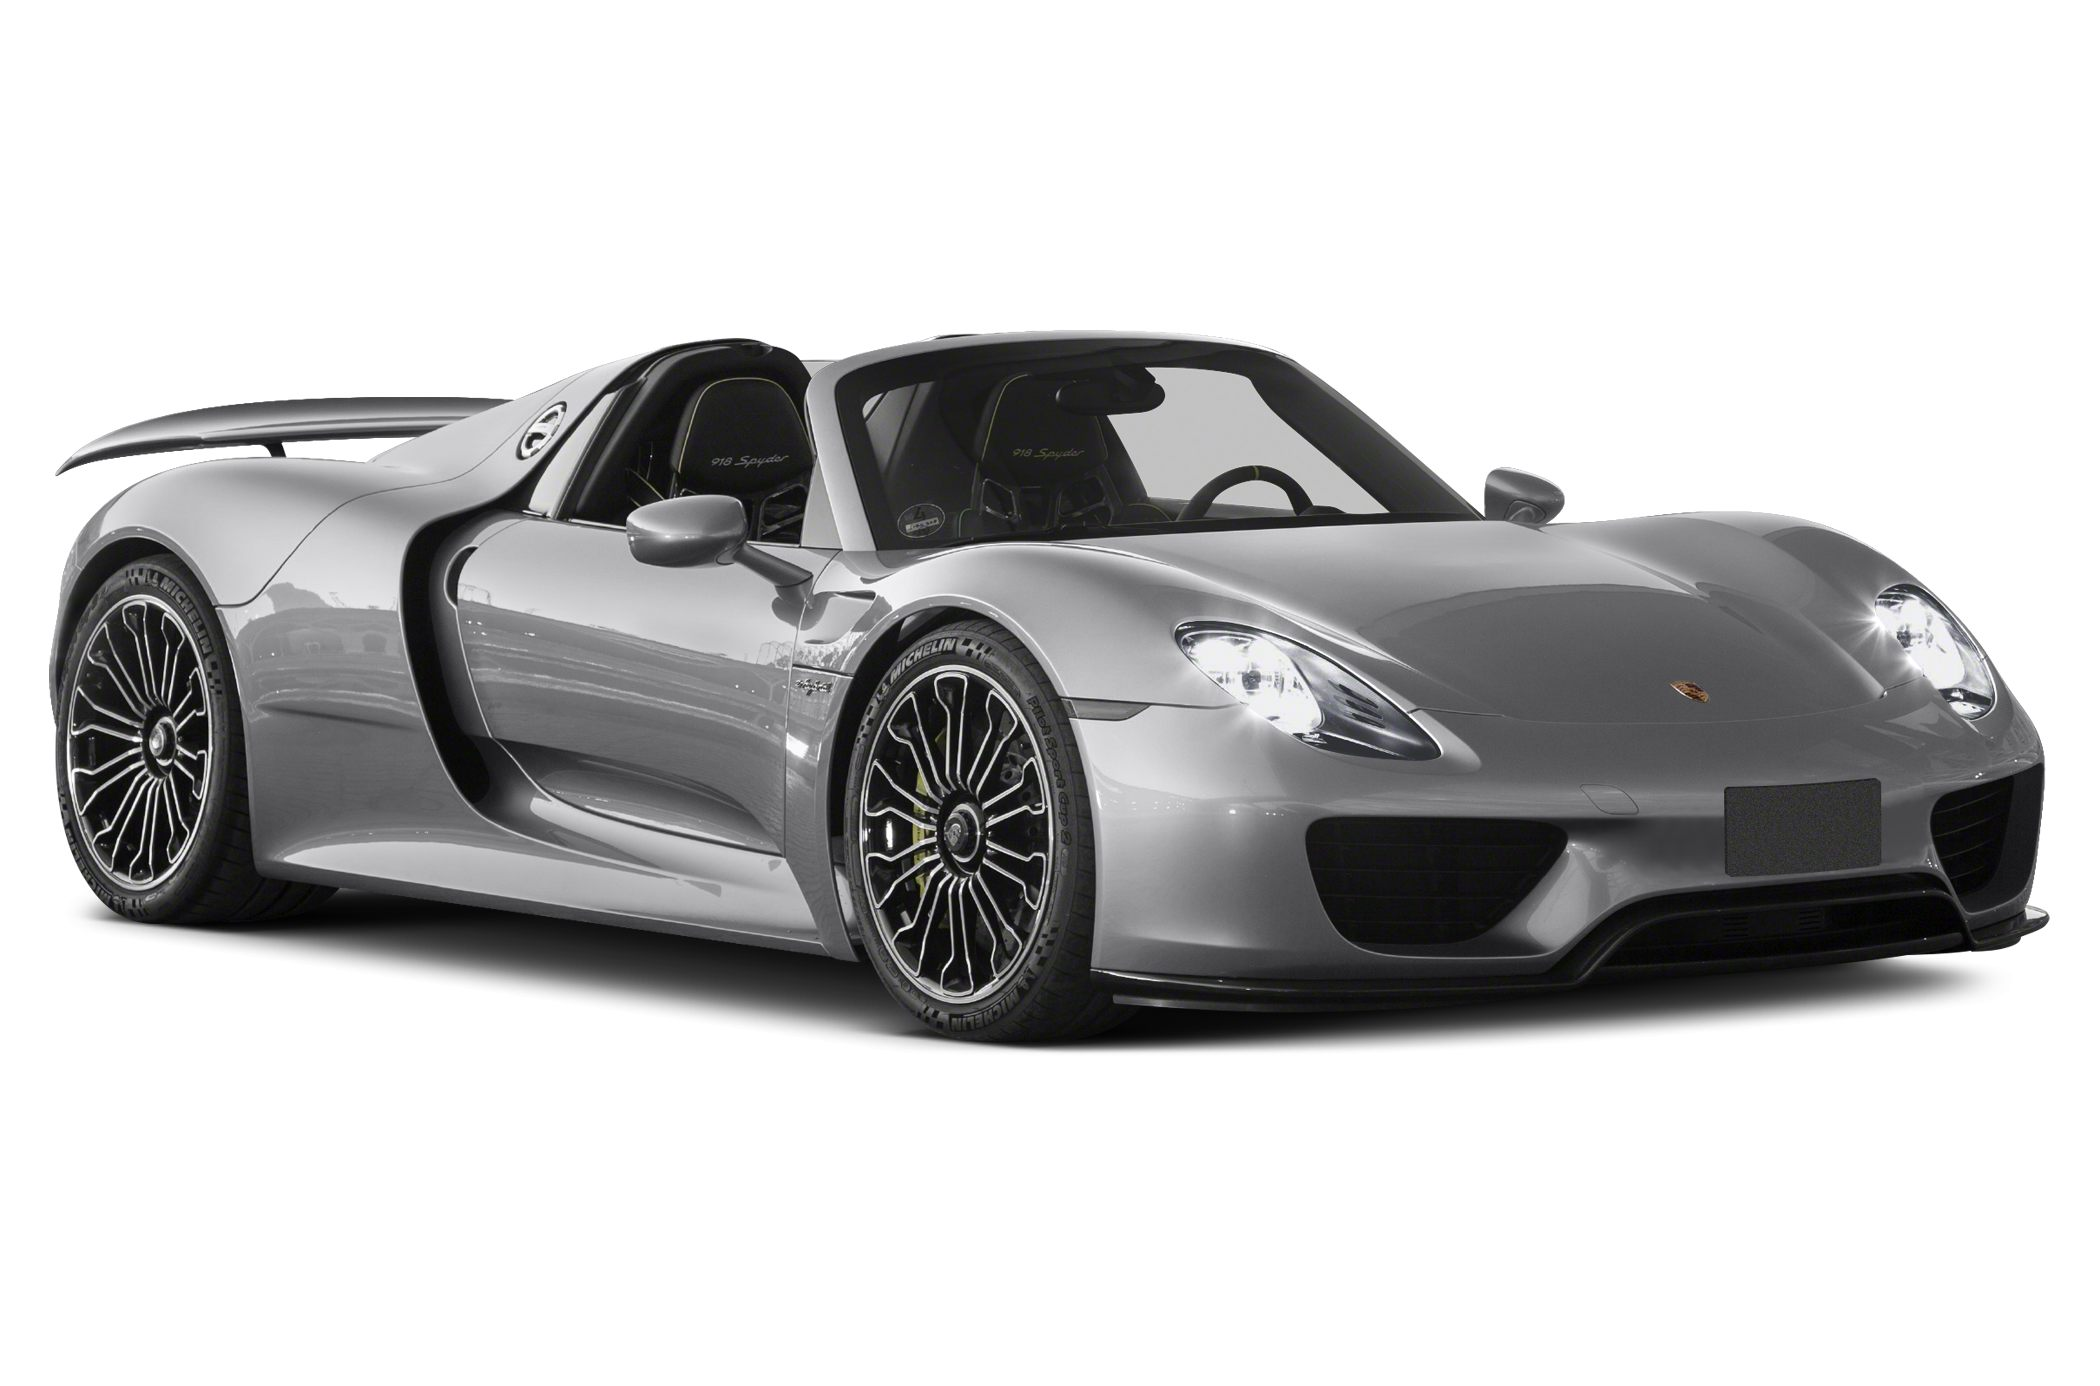 porsche 918 spyder news photos and buying information. Black Bedroom Furniture Sets. Home Design Ideas